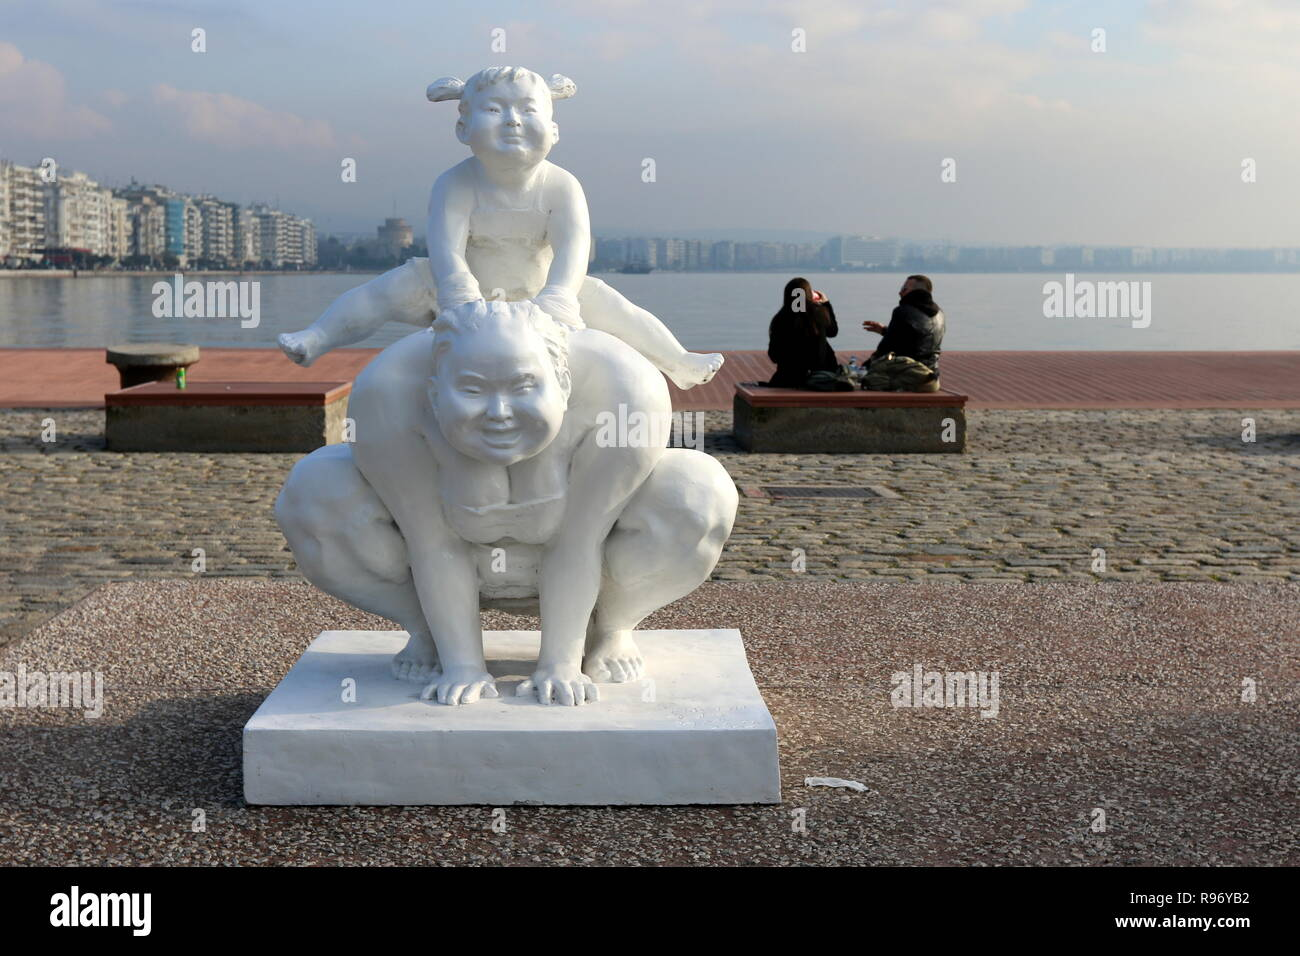 Thessaloniki, Greece  20th Dec 2018  People sit next to a statue by